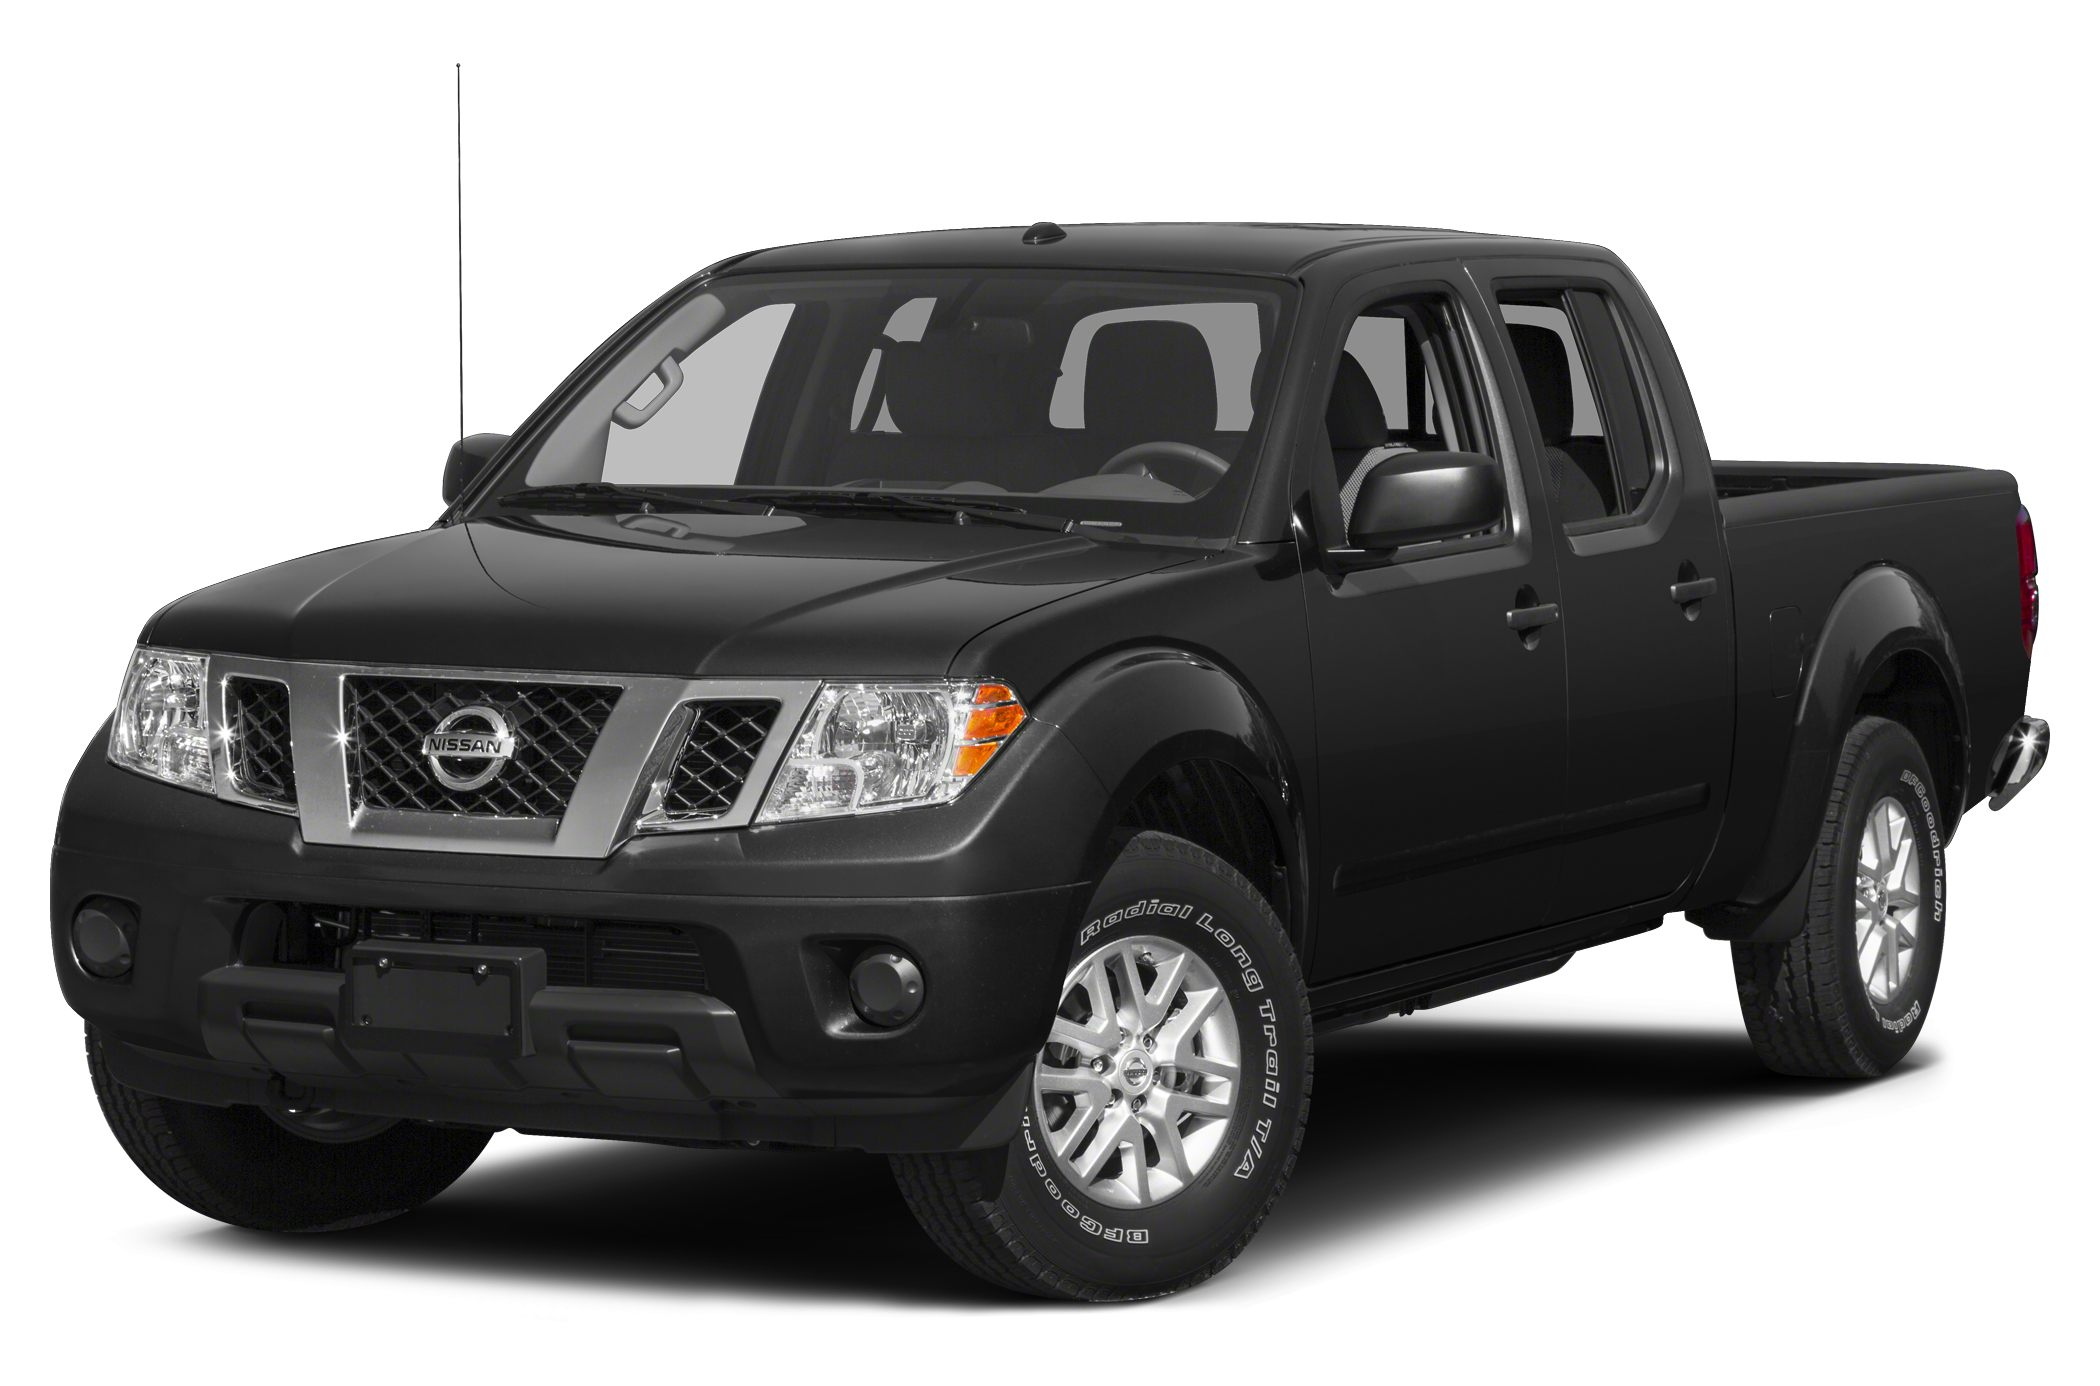 2015 Nissan Frontier SV Crew Cab Pickup for sale in Rockford for $29,312 with 11 miles.